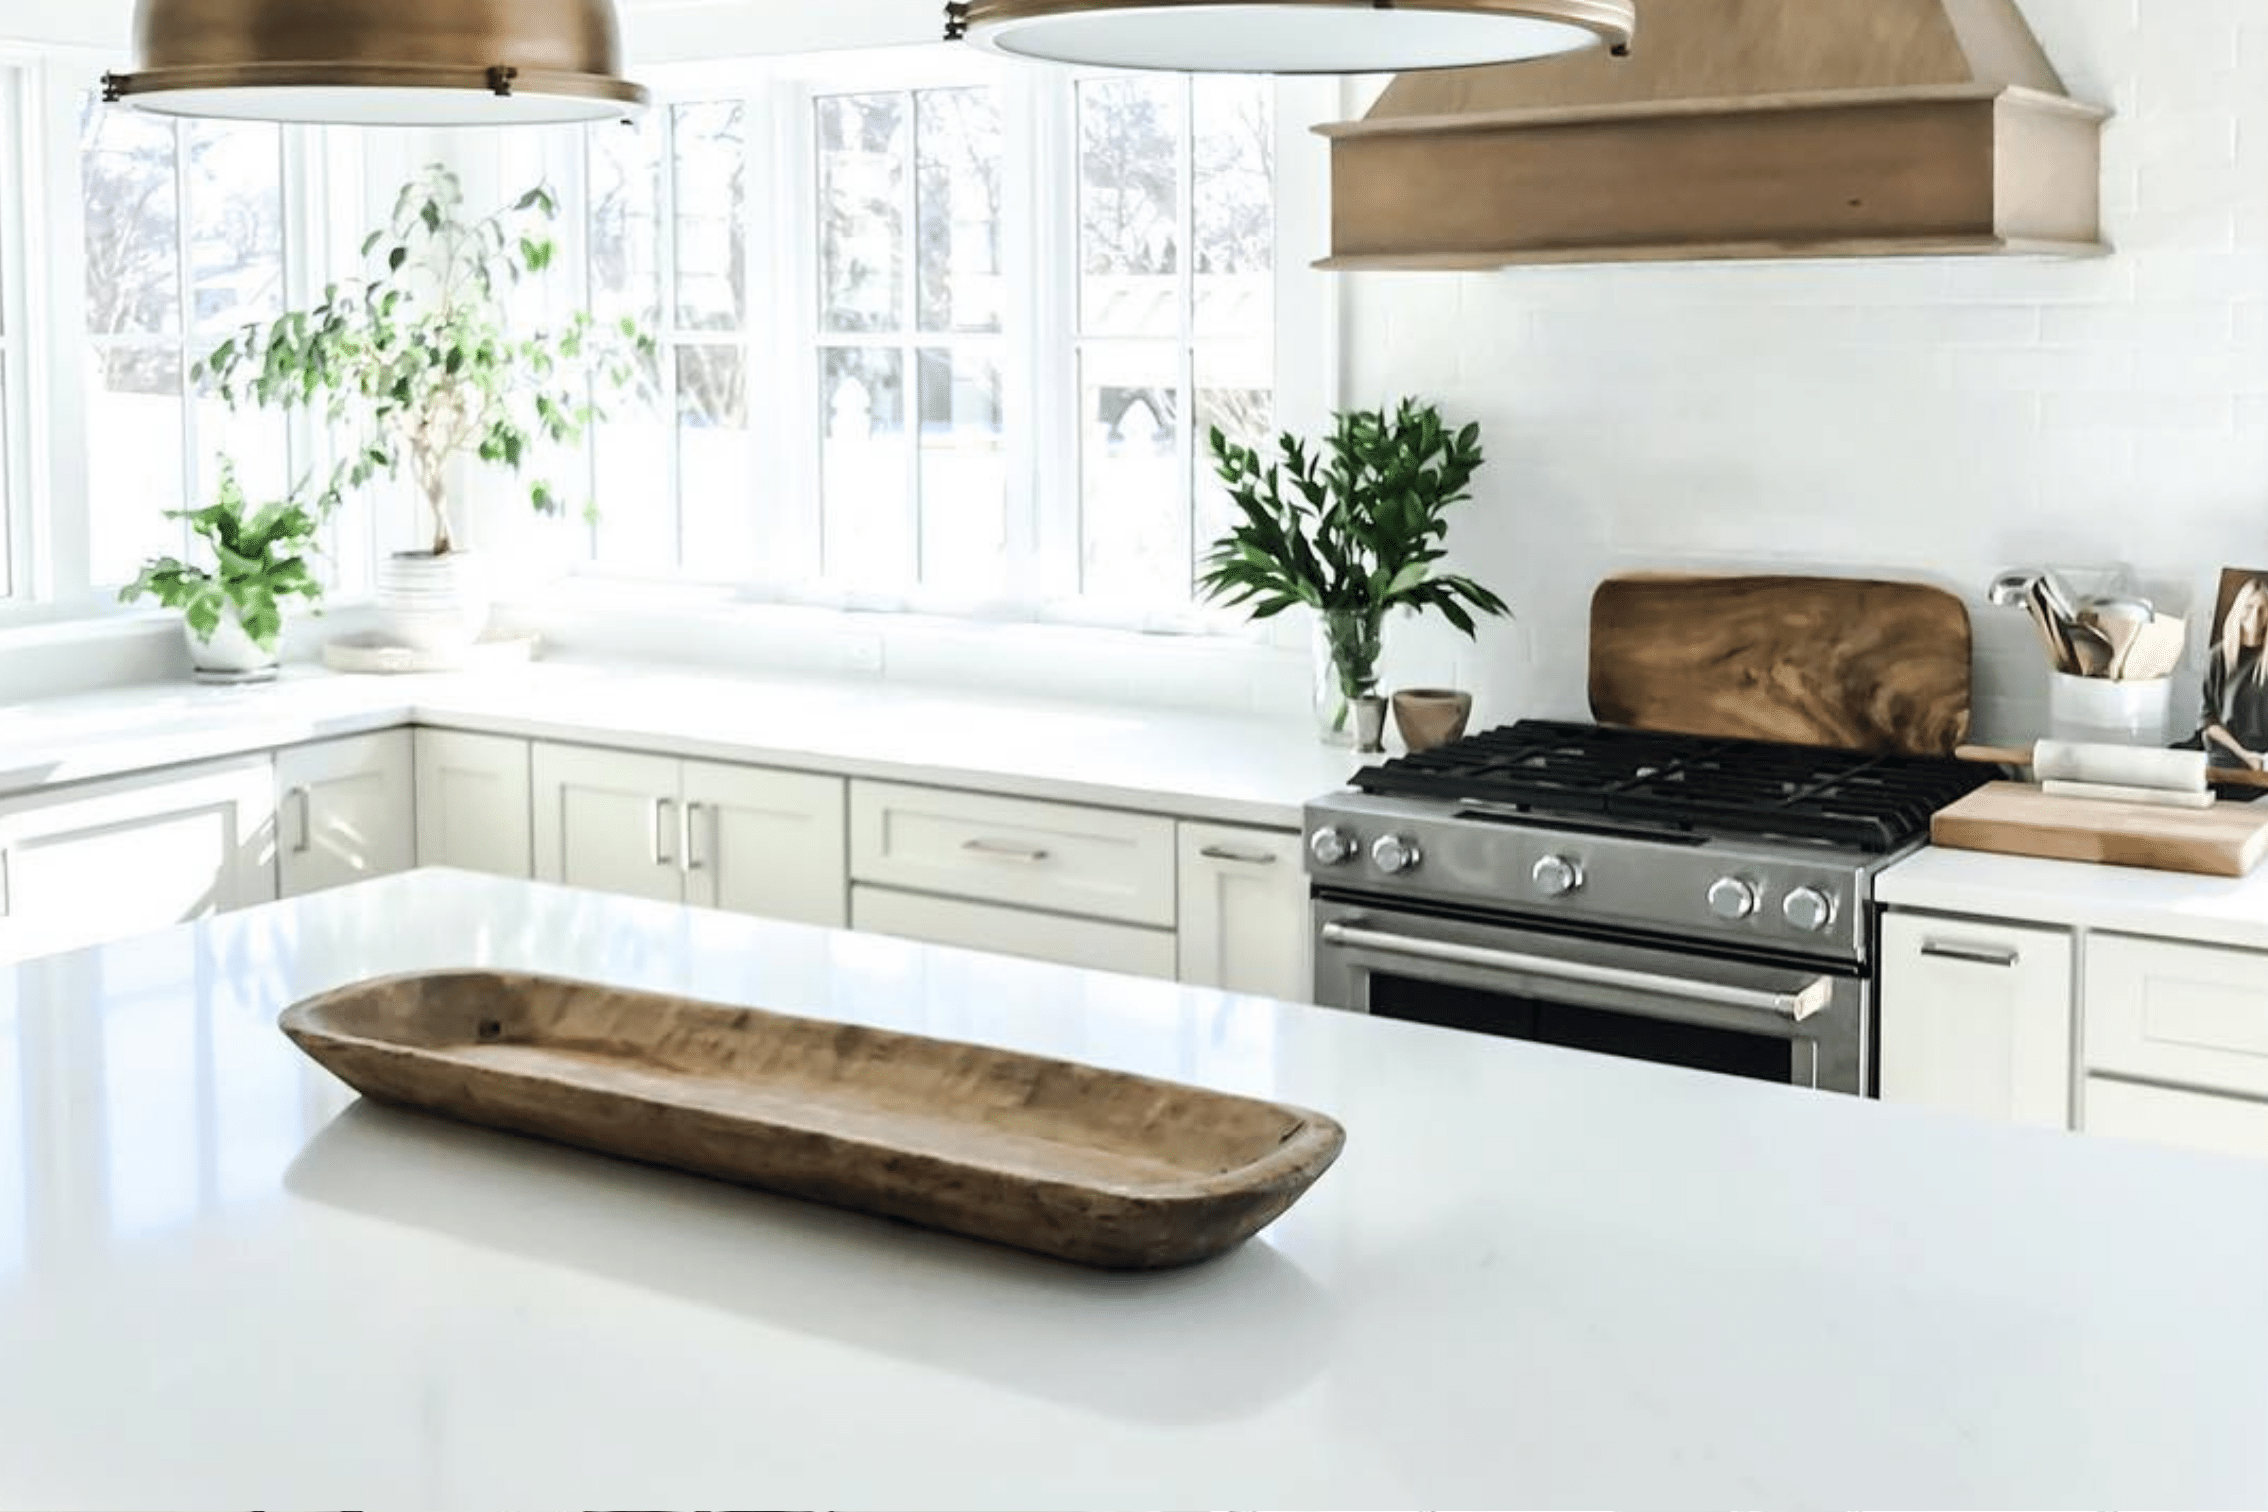 Kitchen Countertop and Brass Appliances